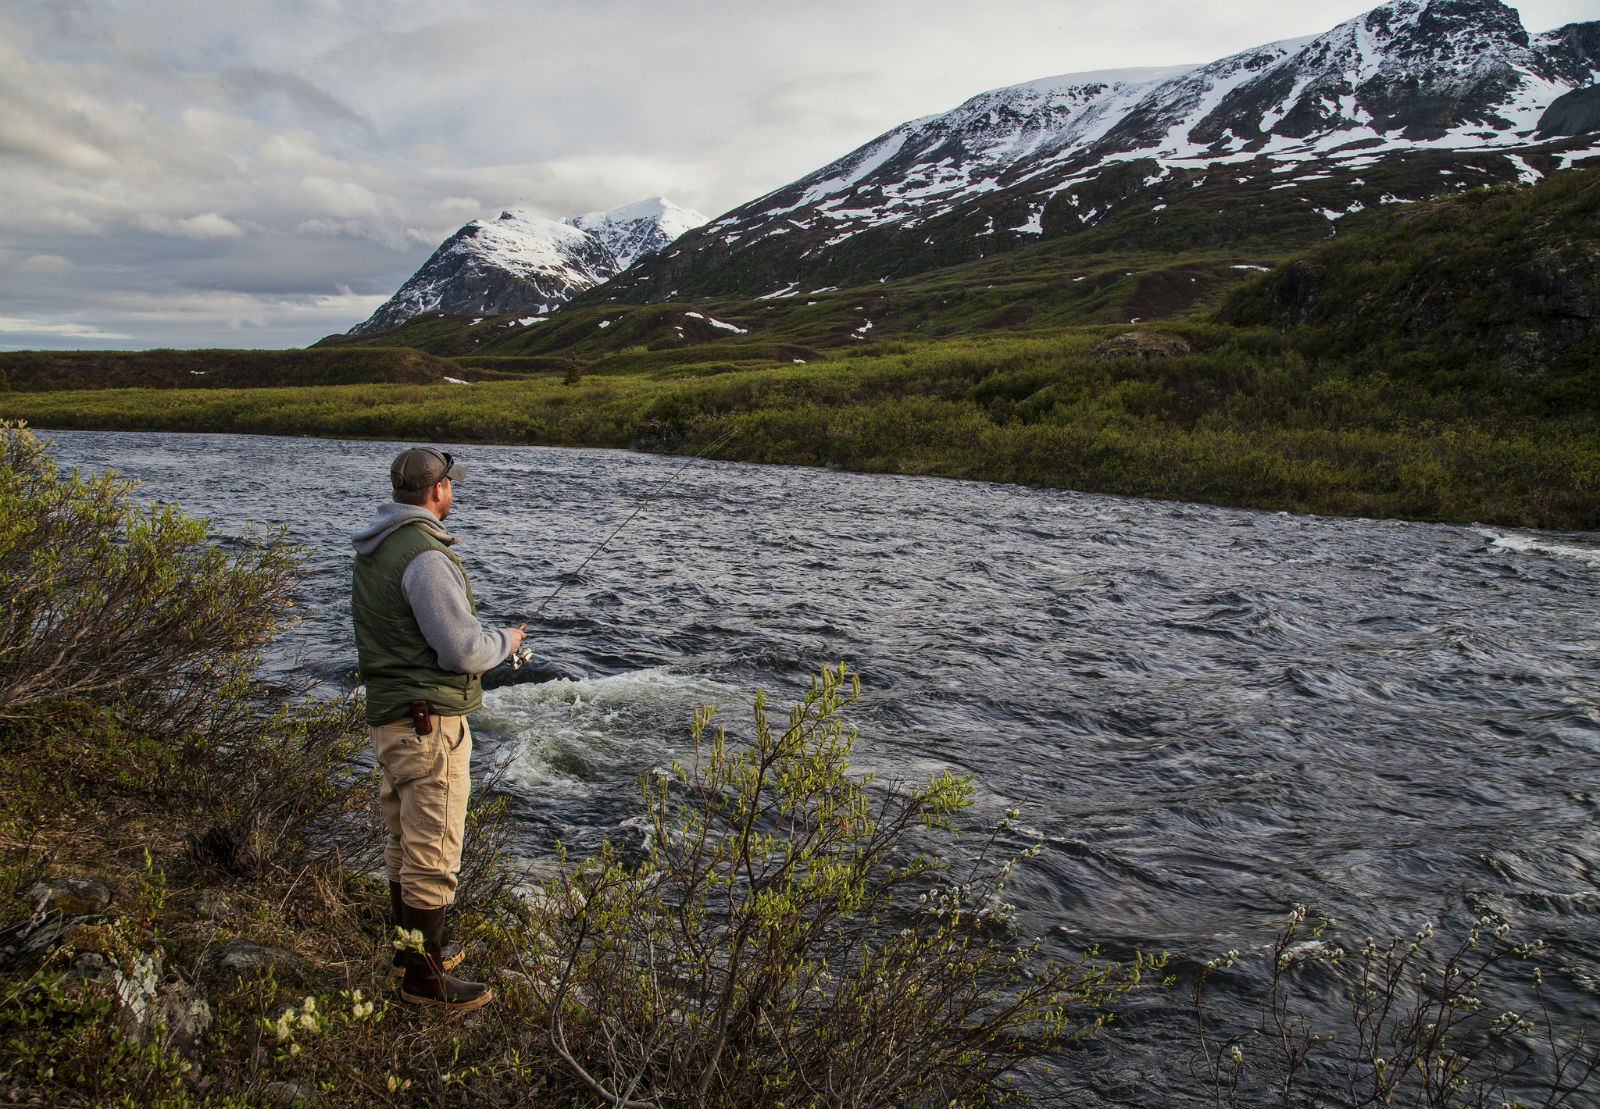 Review: Flyfisher's Guide to Alaska - By Scott Haugen